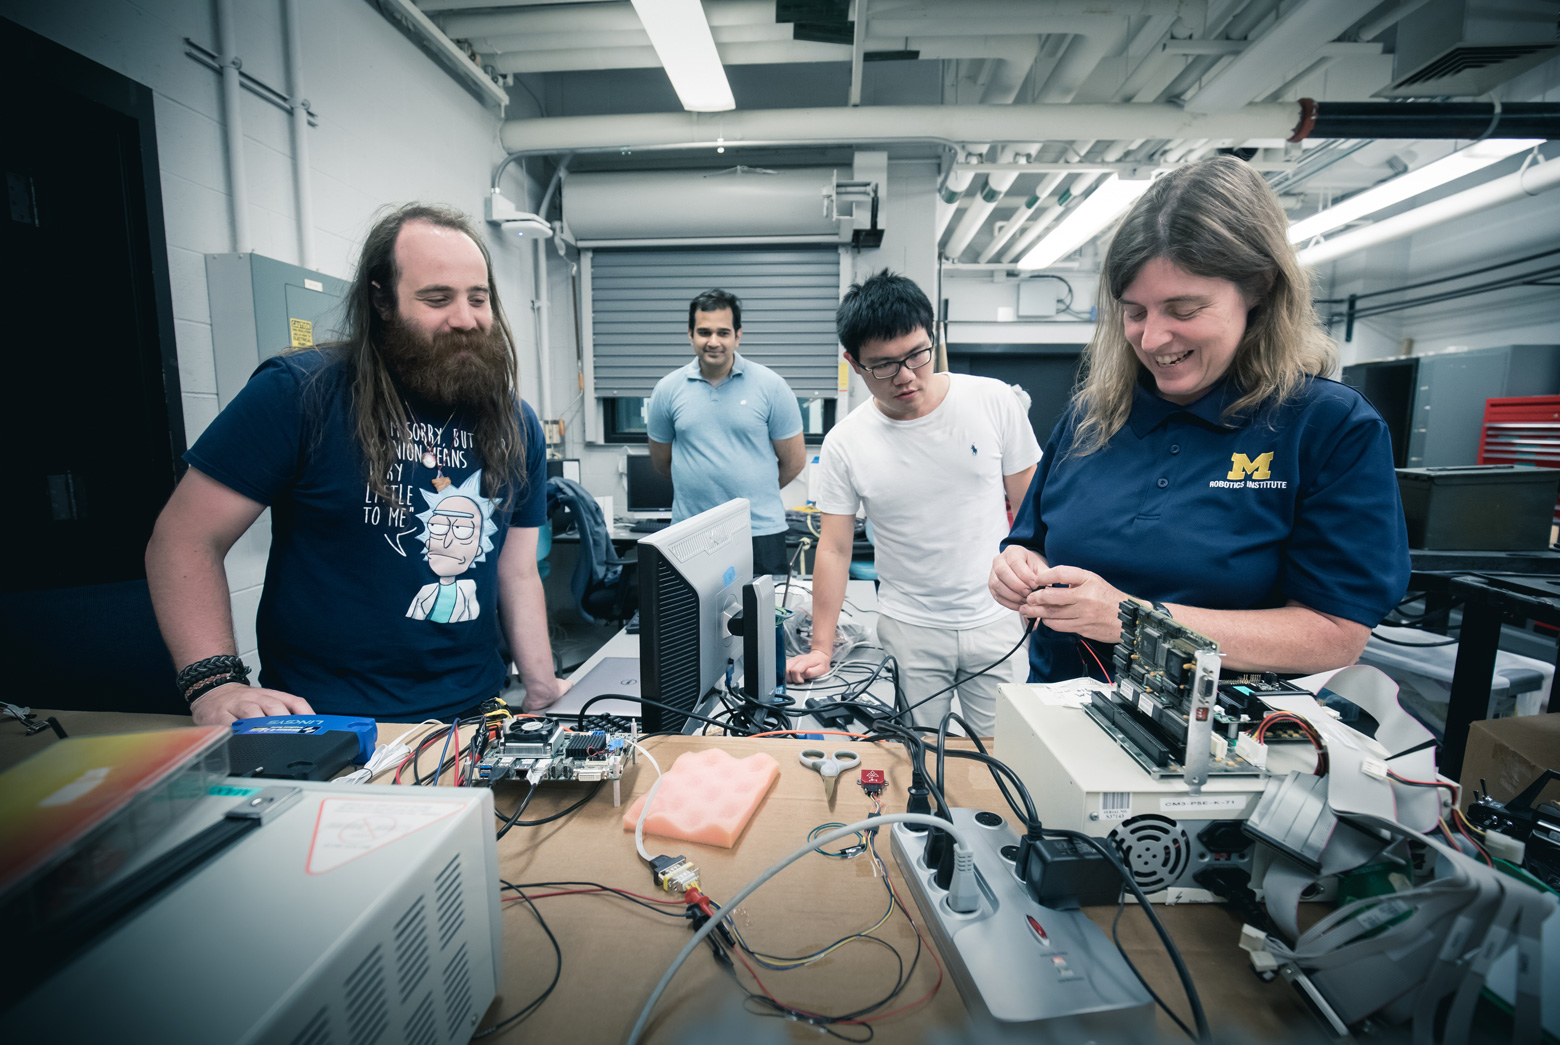 Atkins works with researchers in the lab of Carlos Cesnik, a professor of aerospace engineering. They are installing software for Cesnik's X-HALE (Experimental High Altitude Long Endurance) unmanned aerial vehicle.